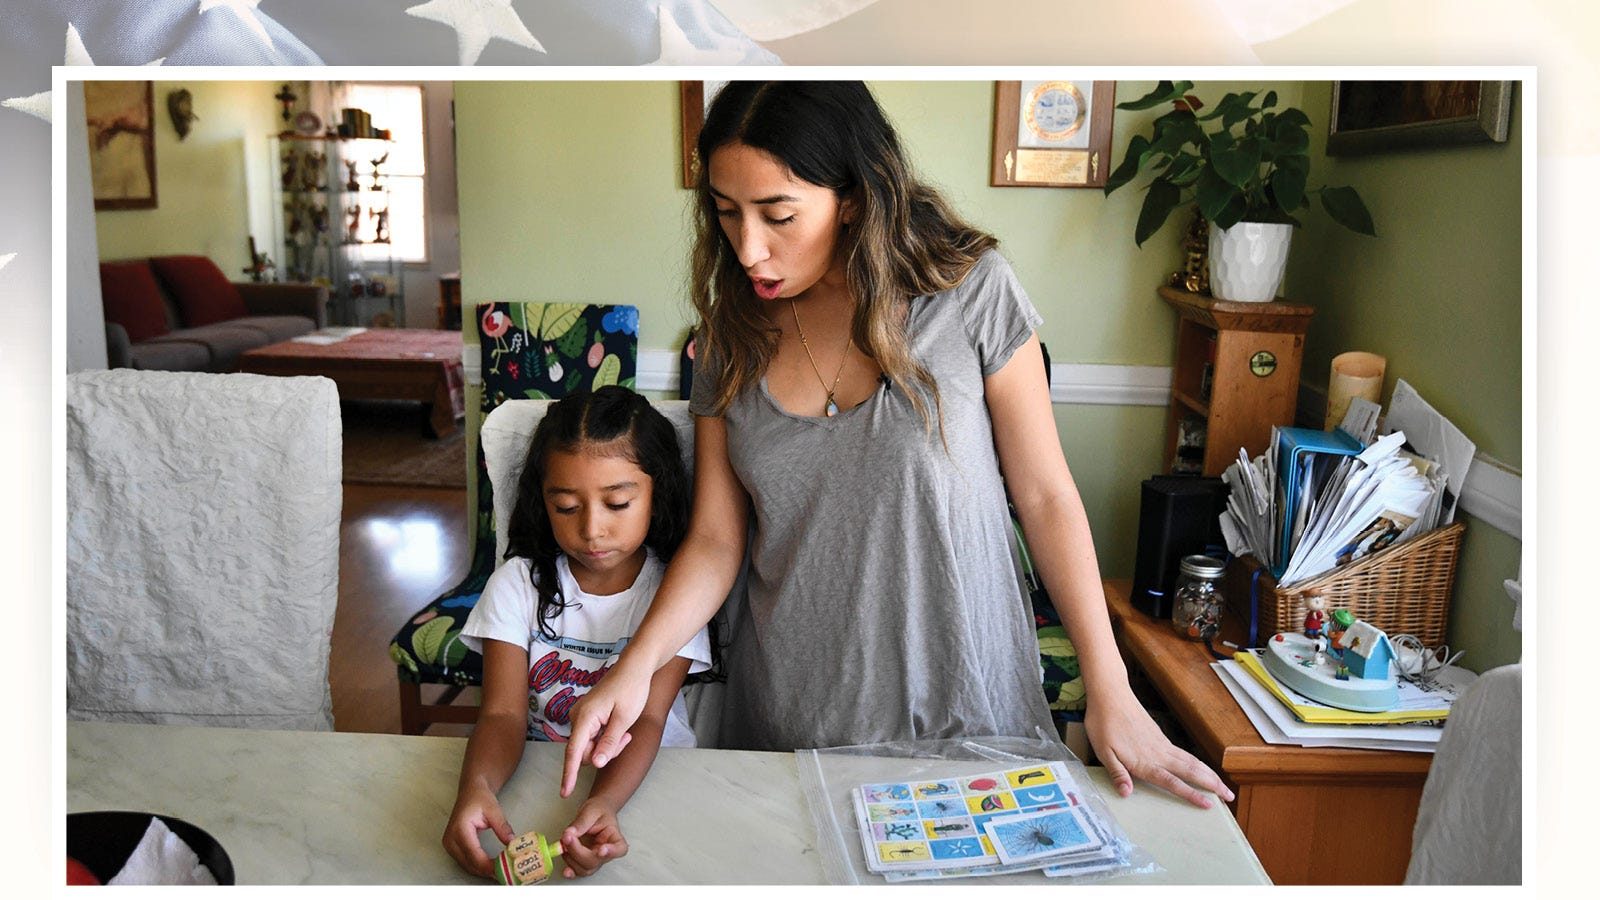 Linda Ortiz and her daughter, Sophie, prepare to play Lotería, a popular Spanish game. Sophie is part of a bilingual education class at UCLA Lab School, where she is learning 90% Spanish and 10% English.